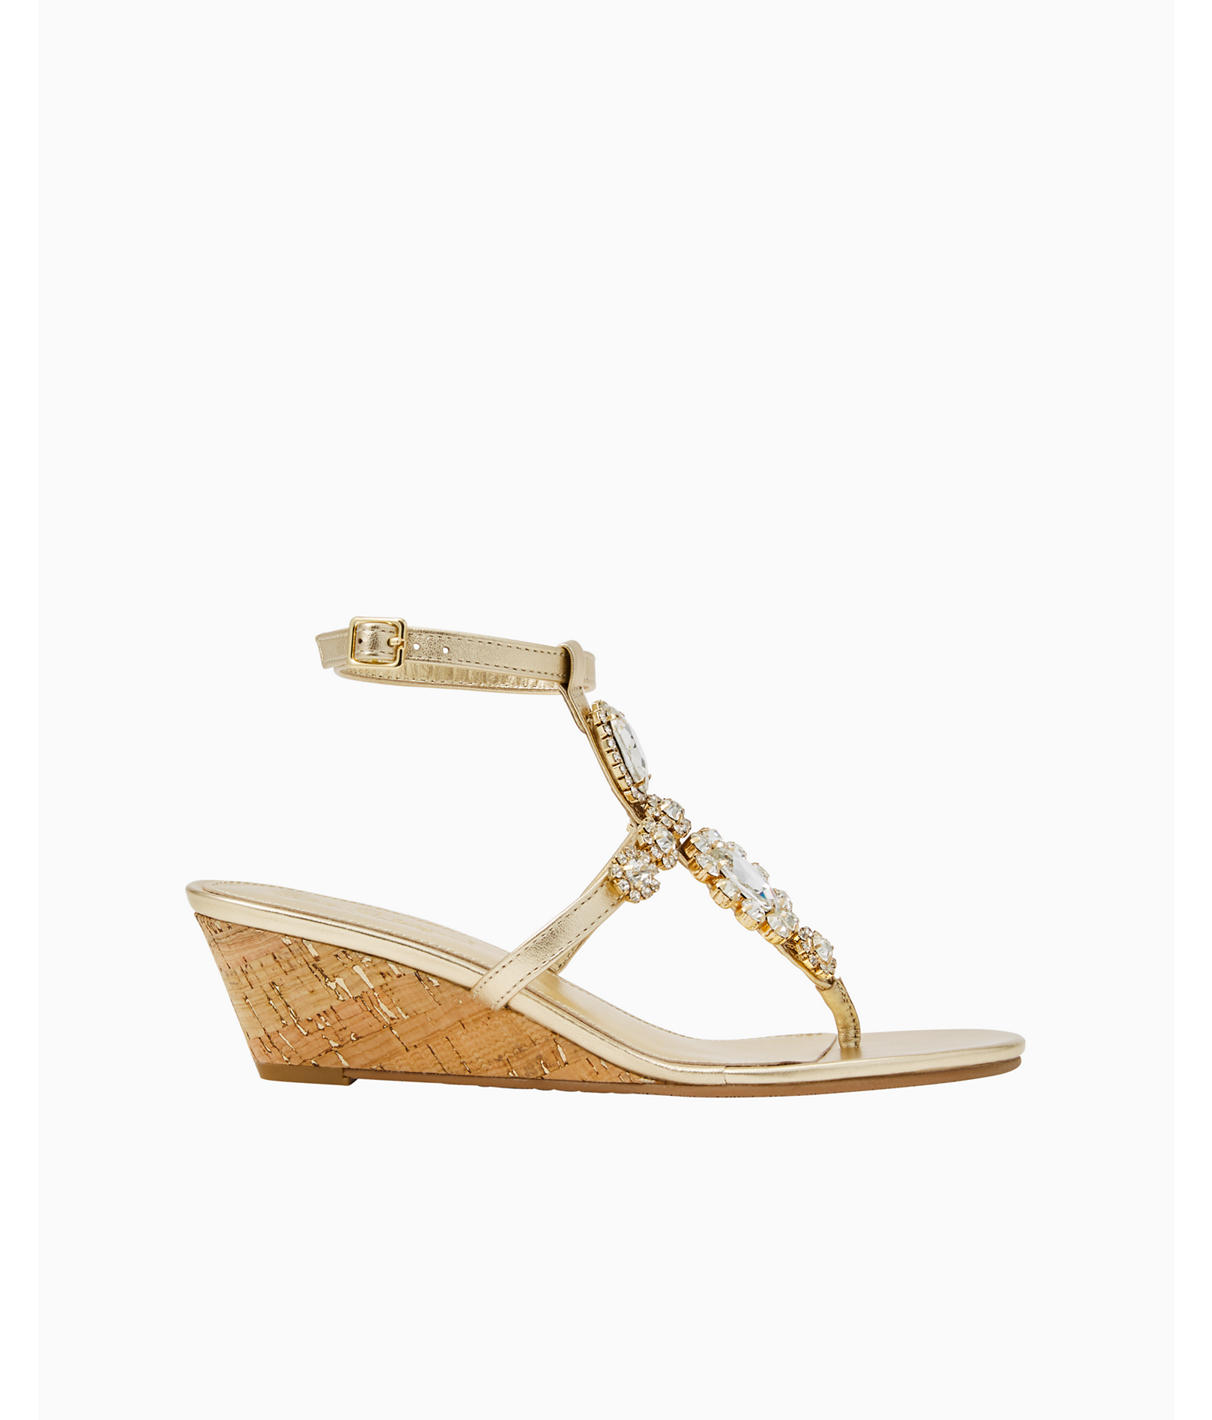 Lilly Pulitzer Katelyn Embellished Wedge In Gold Metallic